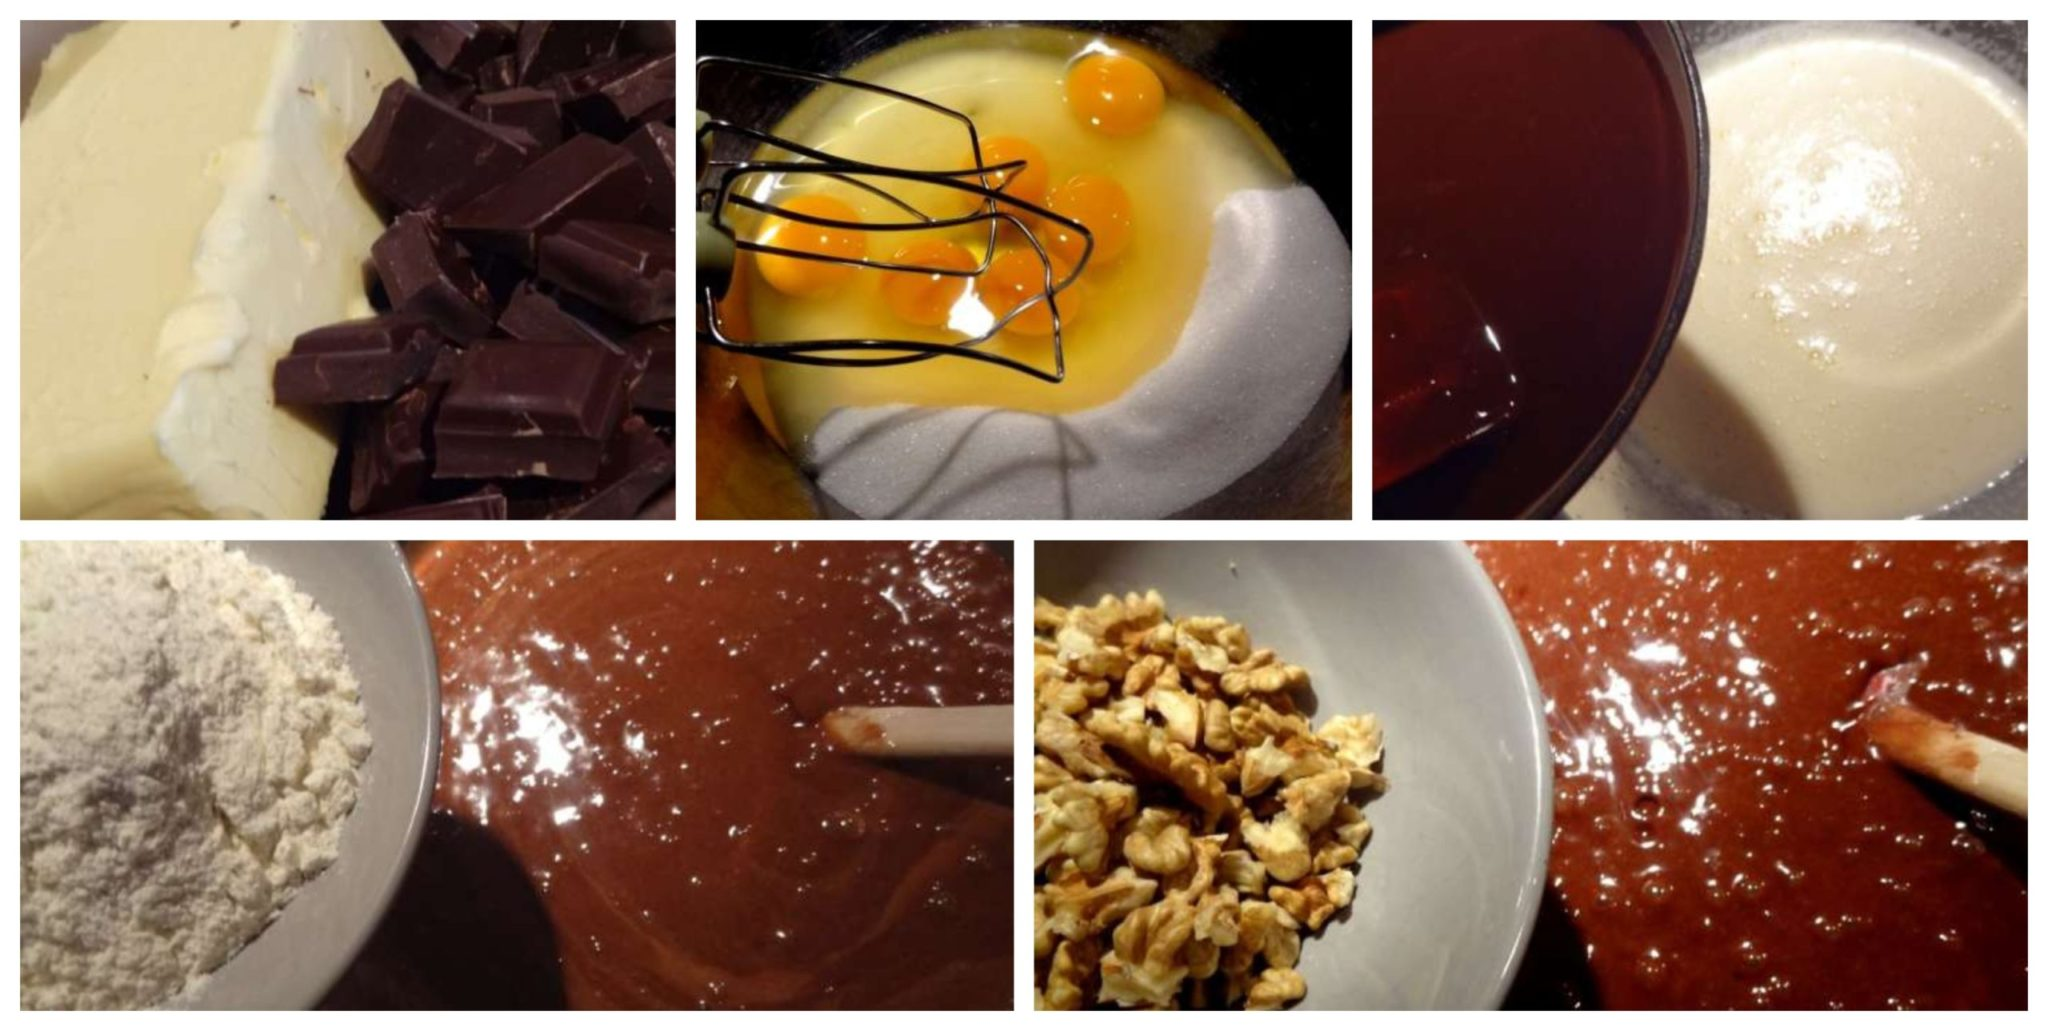 mixing chocolate nuts and cream